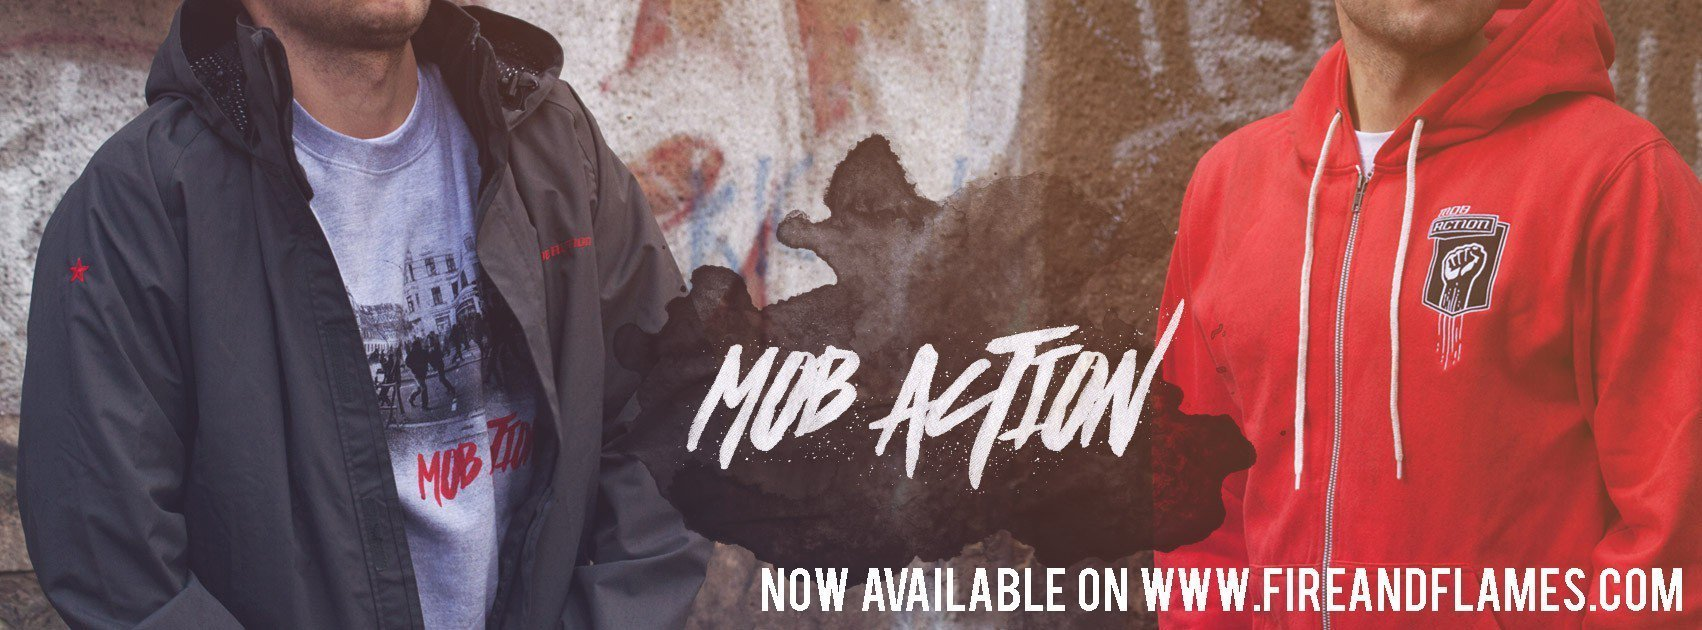 mobaction_banner